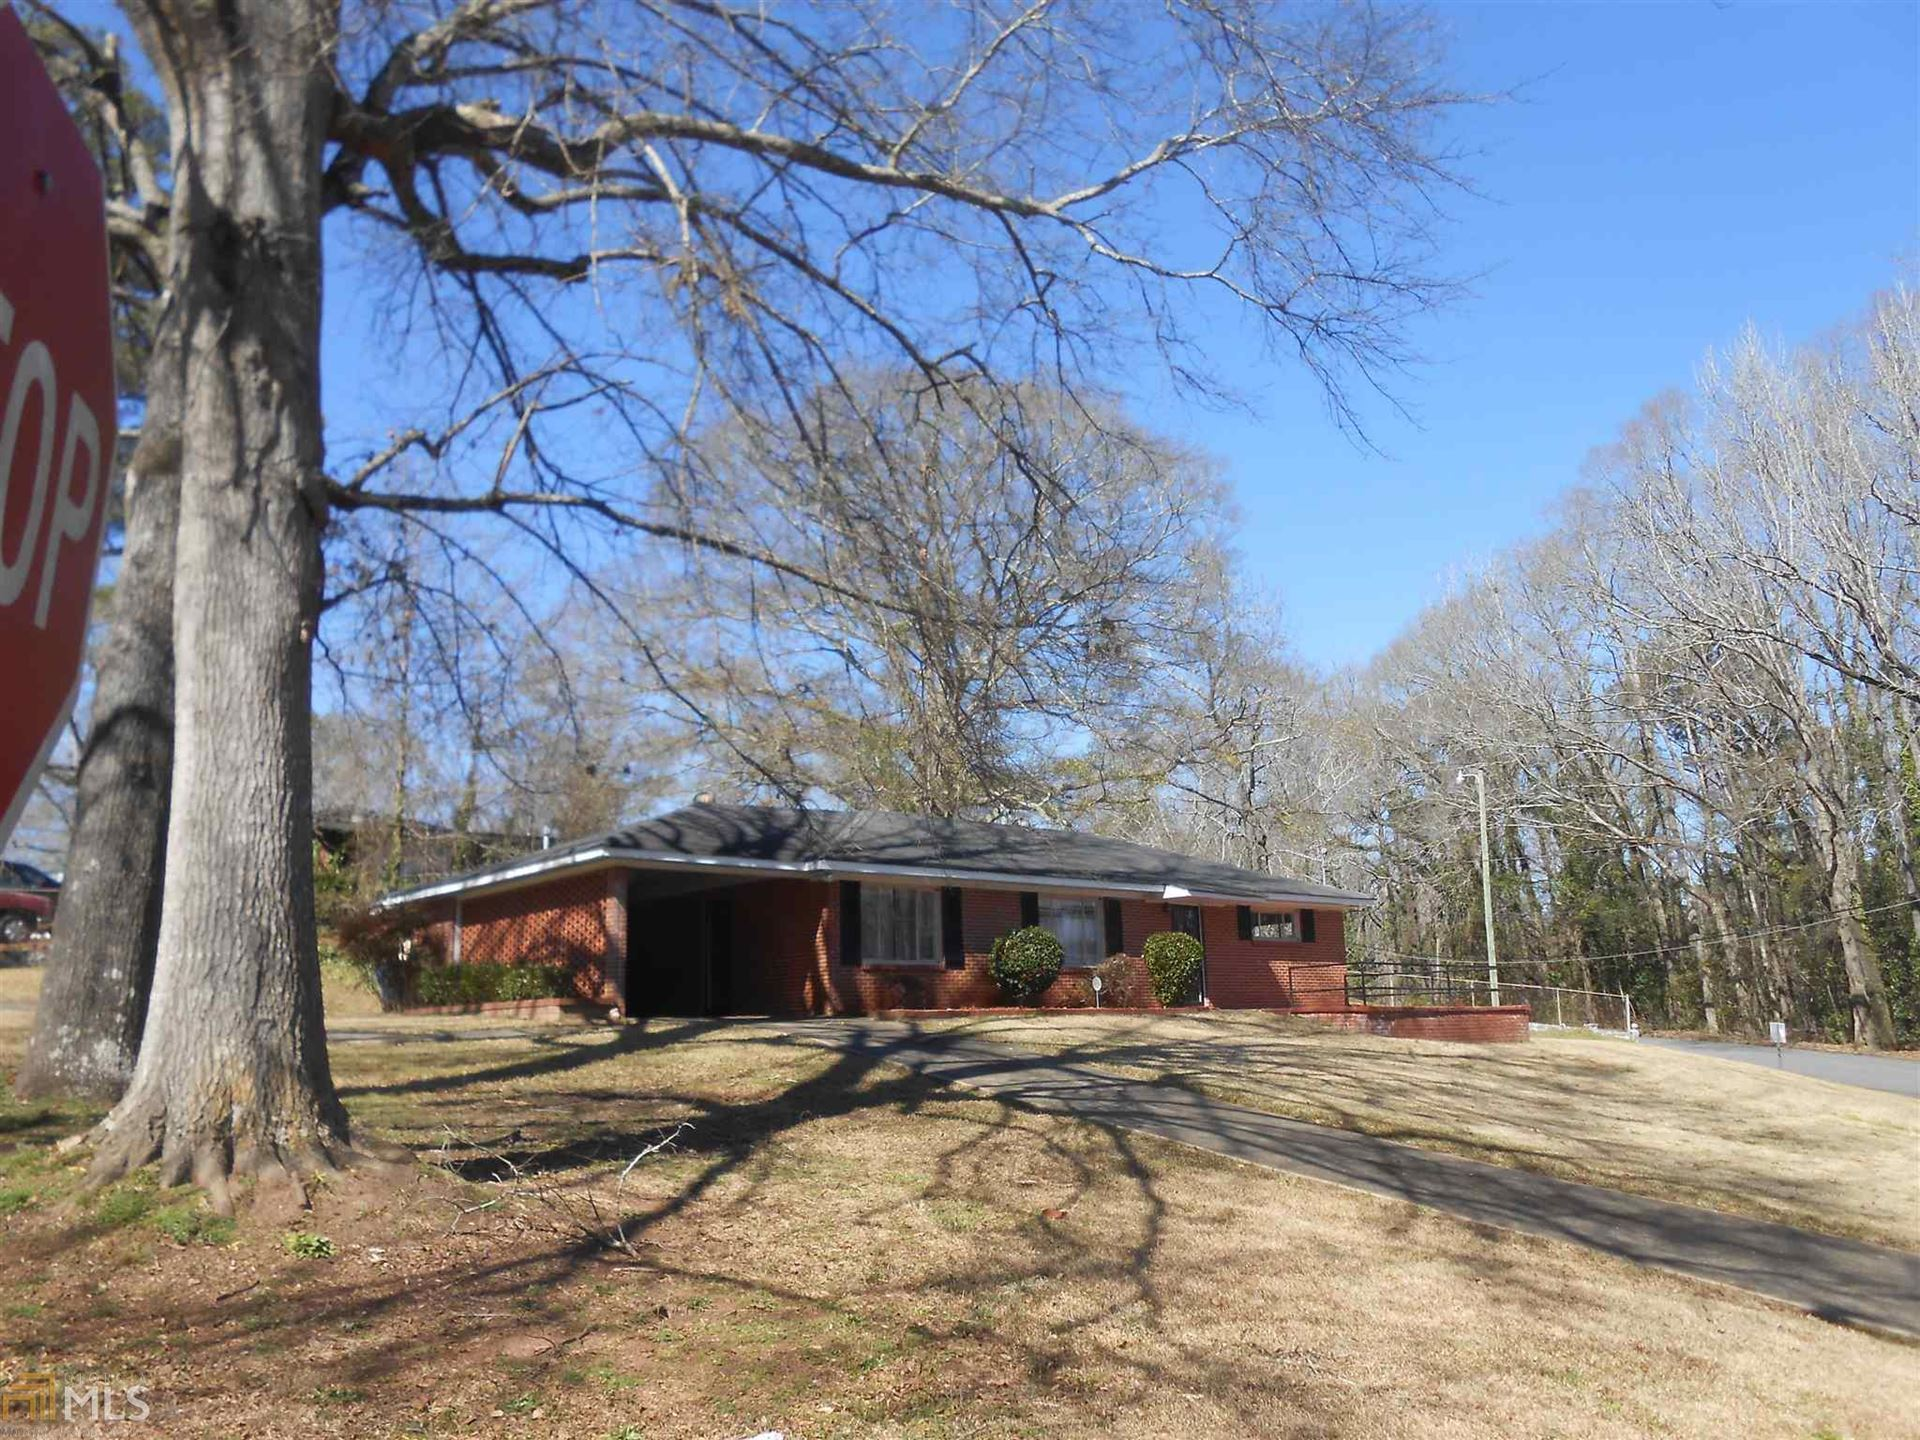 1201 N 8Th Ave, Lanett, AL 36863 - #: 8906402